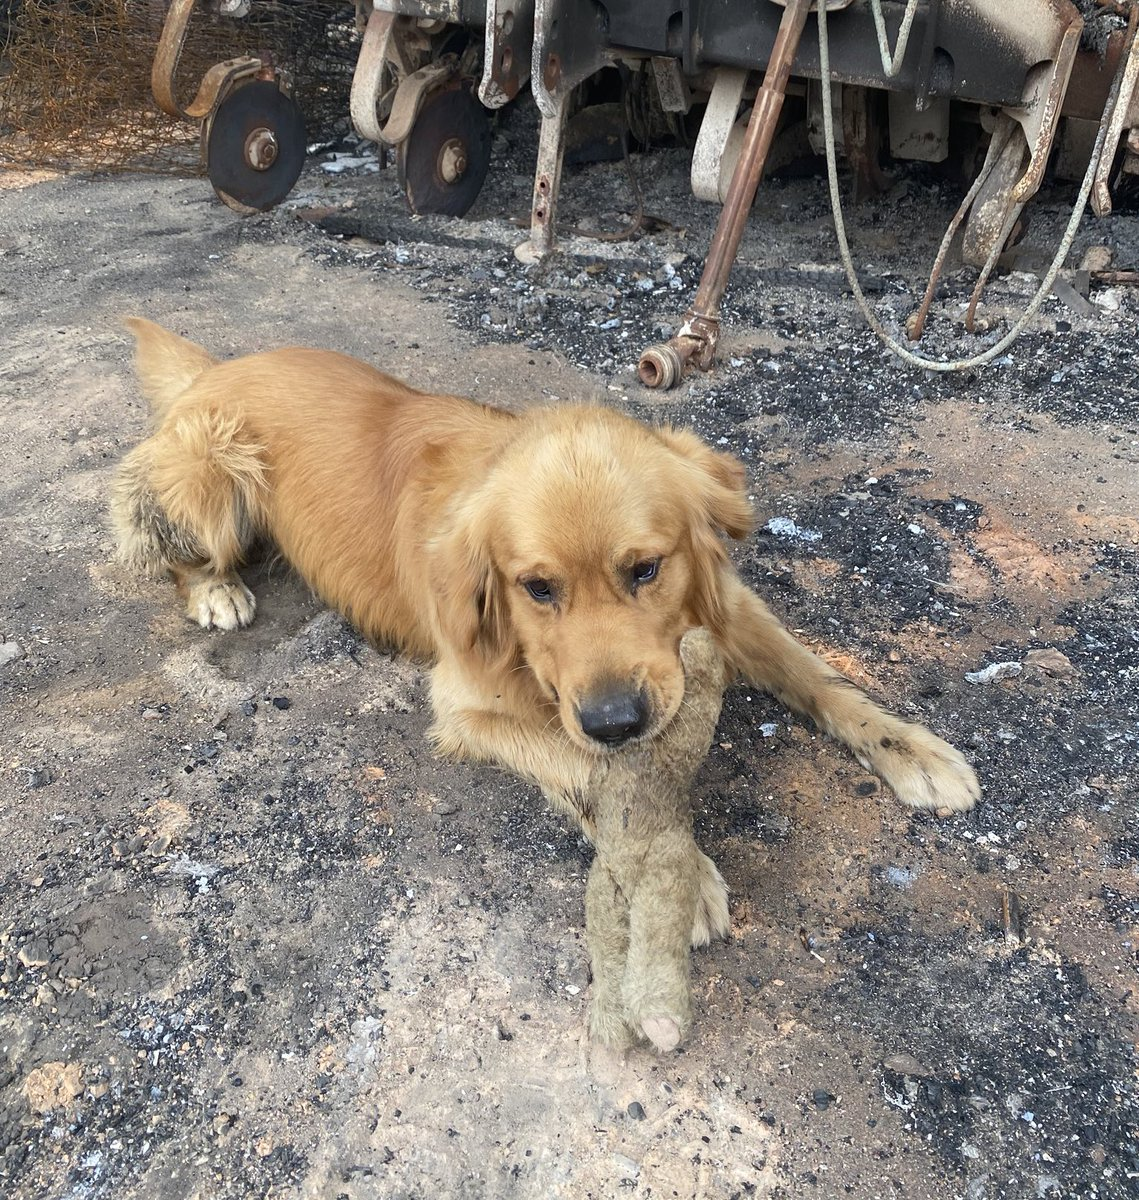 This is OJ. After safely evacuating, him and his family returned to their home in Wairewa, Australia yesterday to find it entirely destroyed by the fires. But amongst the rubble, OJ found his favorite toy had survived. 14/10 never letting it go again